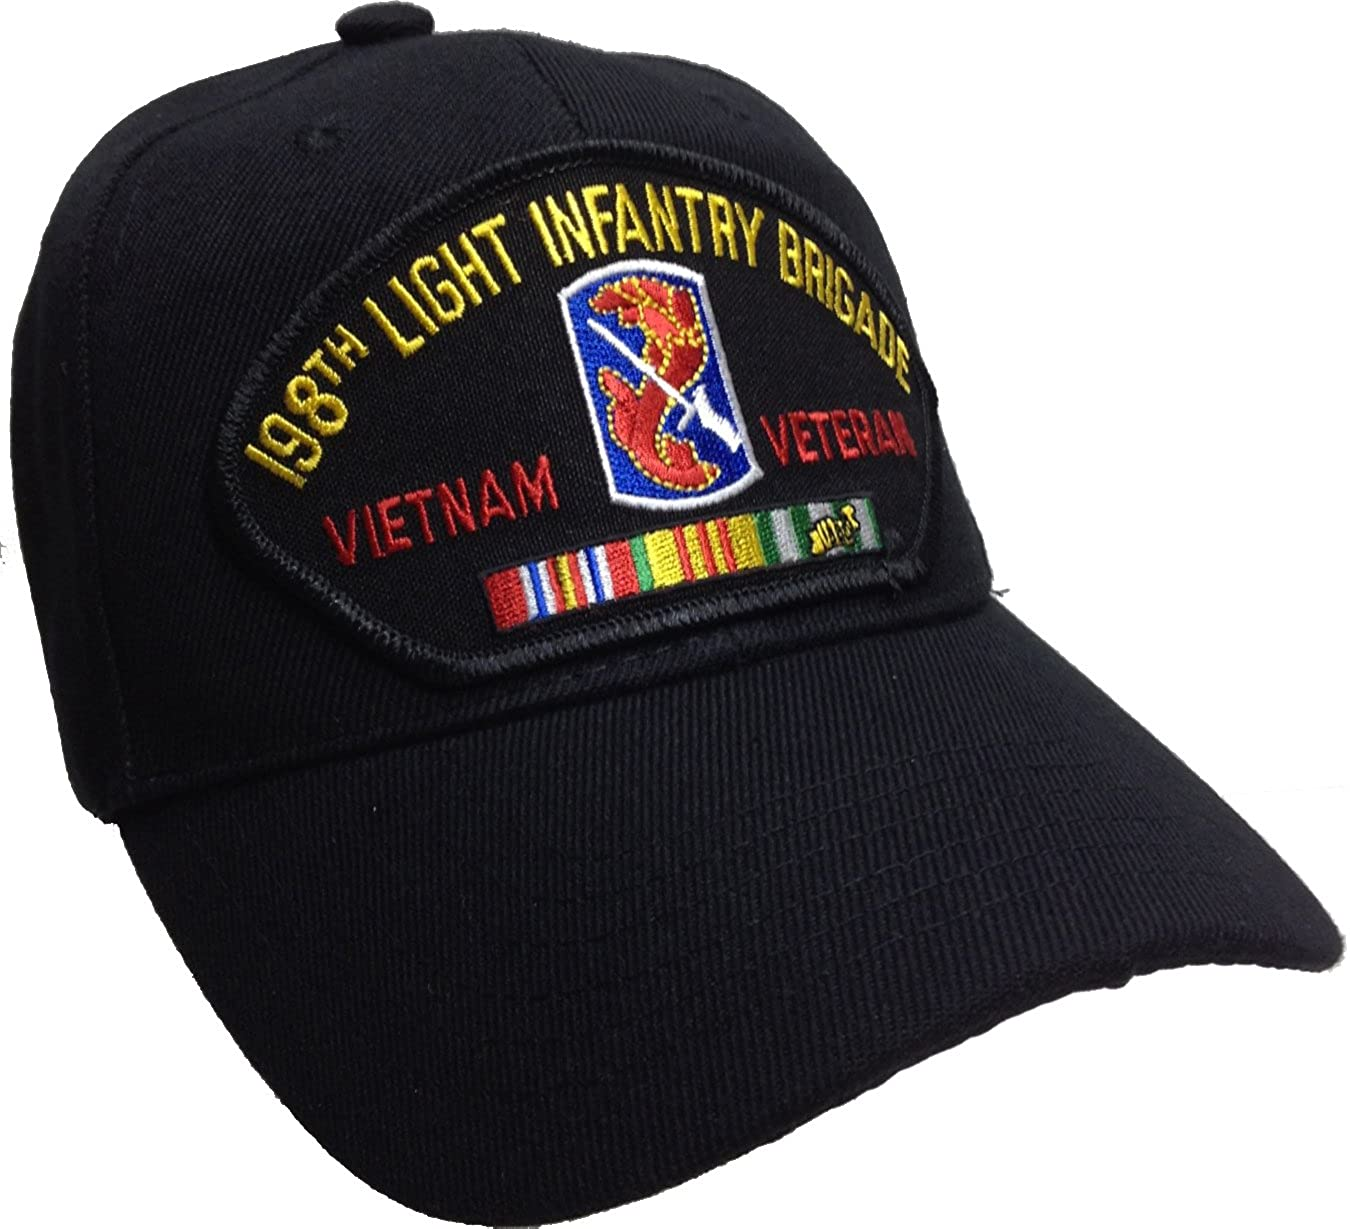 Hawkins Military Merchants 198th Light Infantry Brigade Hat Vietnam Veteran